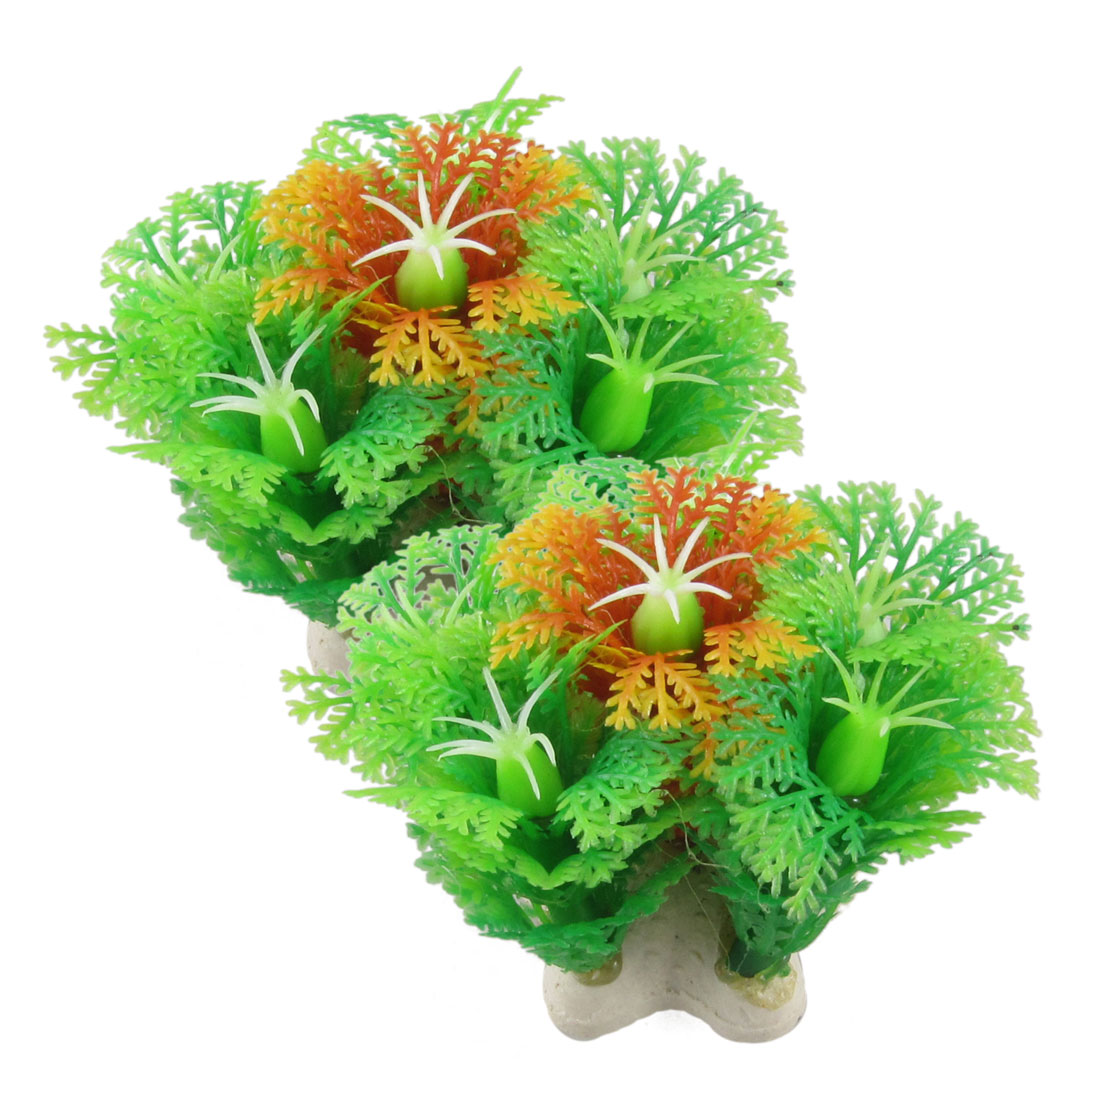 "2 Pcs Simulated Green Orange Plastic Plant Ornament 2.5"" for Aquarium Fish Tank"